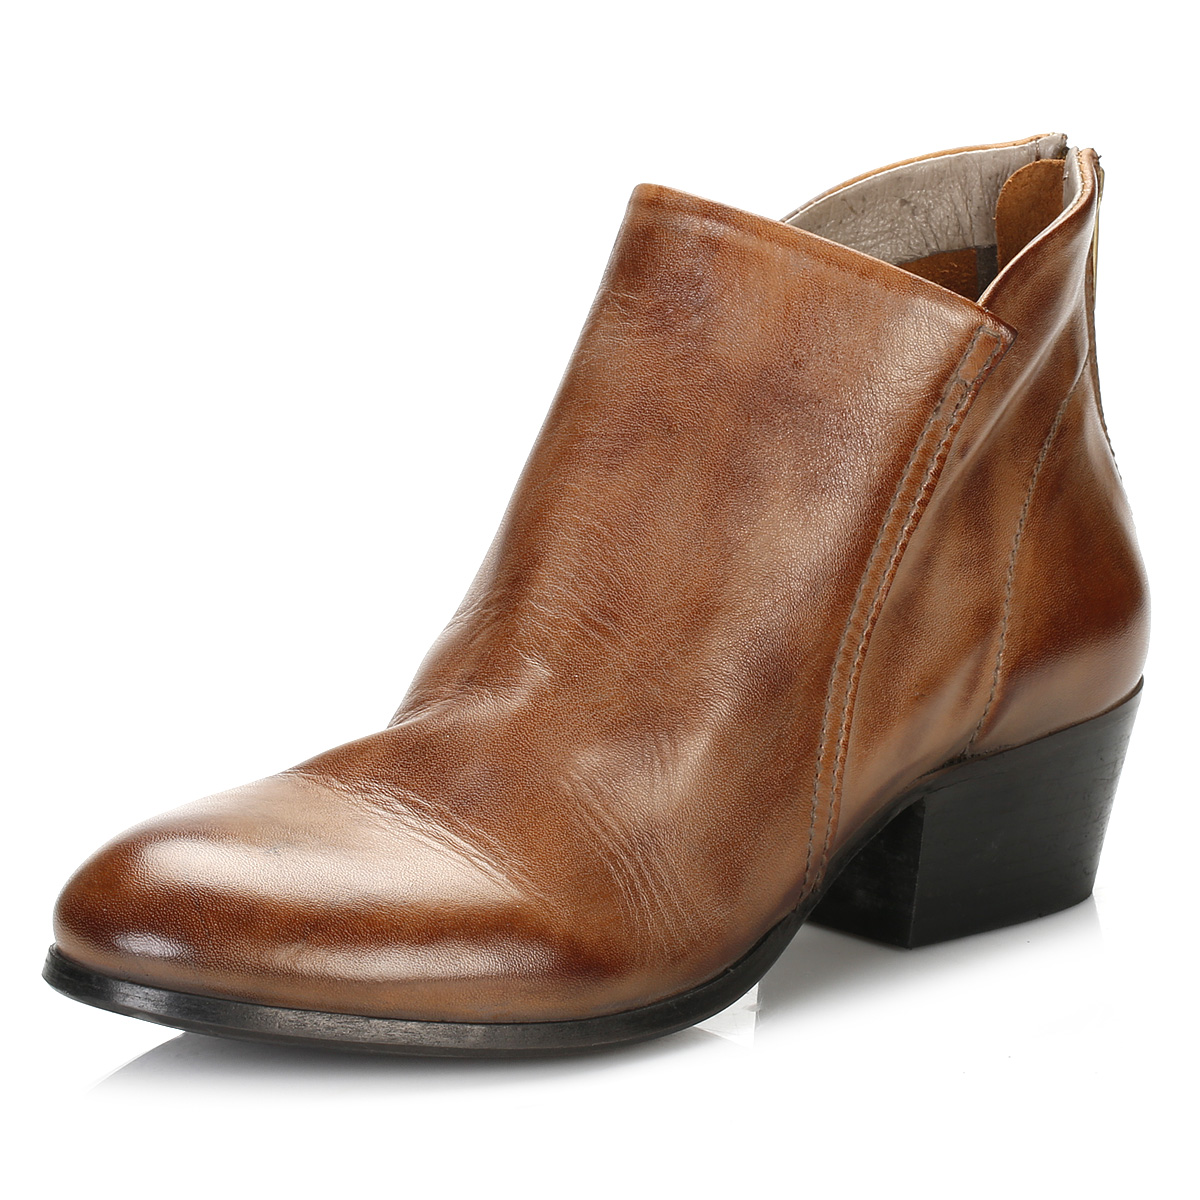 Ankle Boots, Tan Women's Boots: Find the latest styles of Shoes from sofltappreciate.tk Your Online Women's Shoes Store! Get 5% in rewards with Club O!